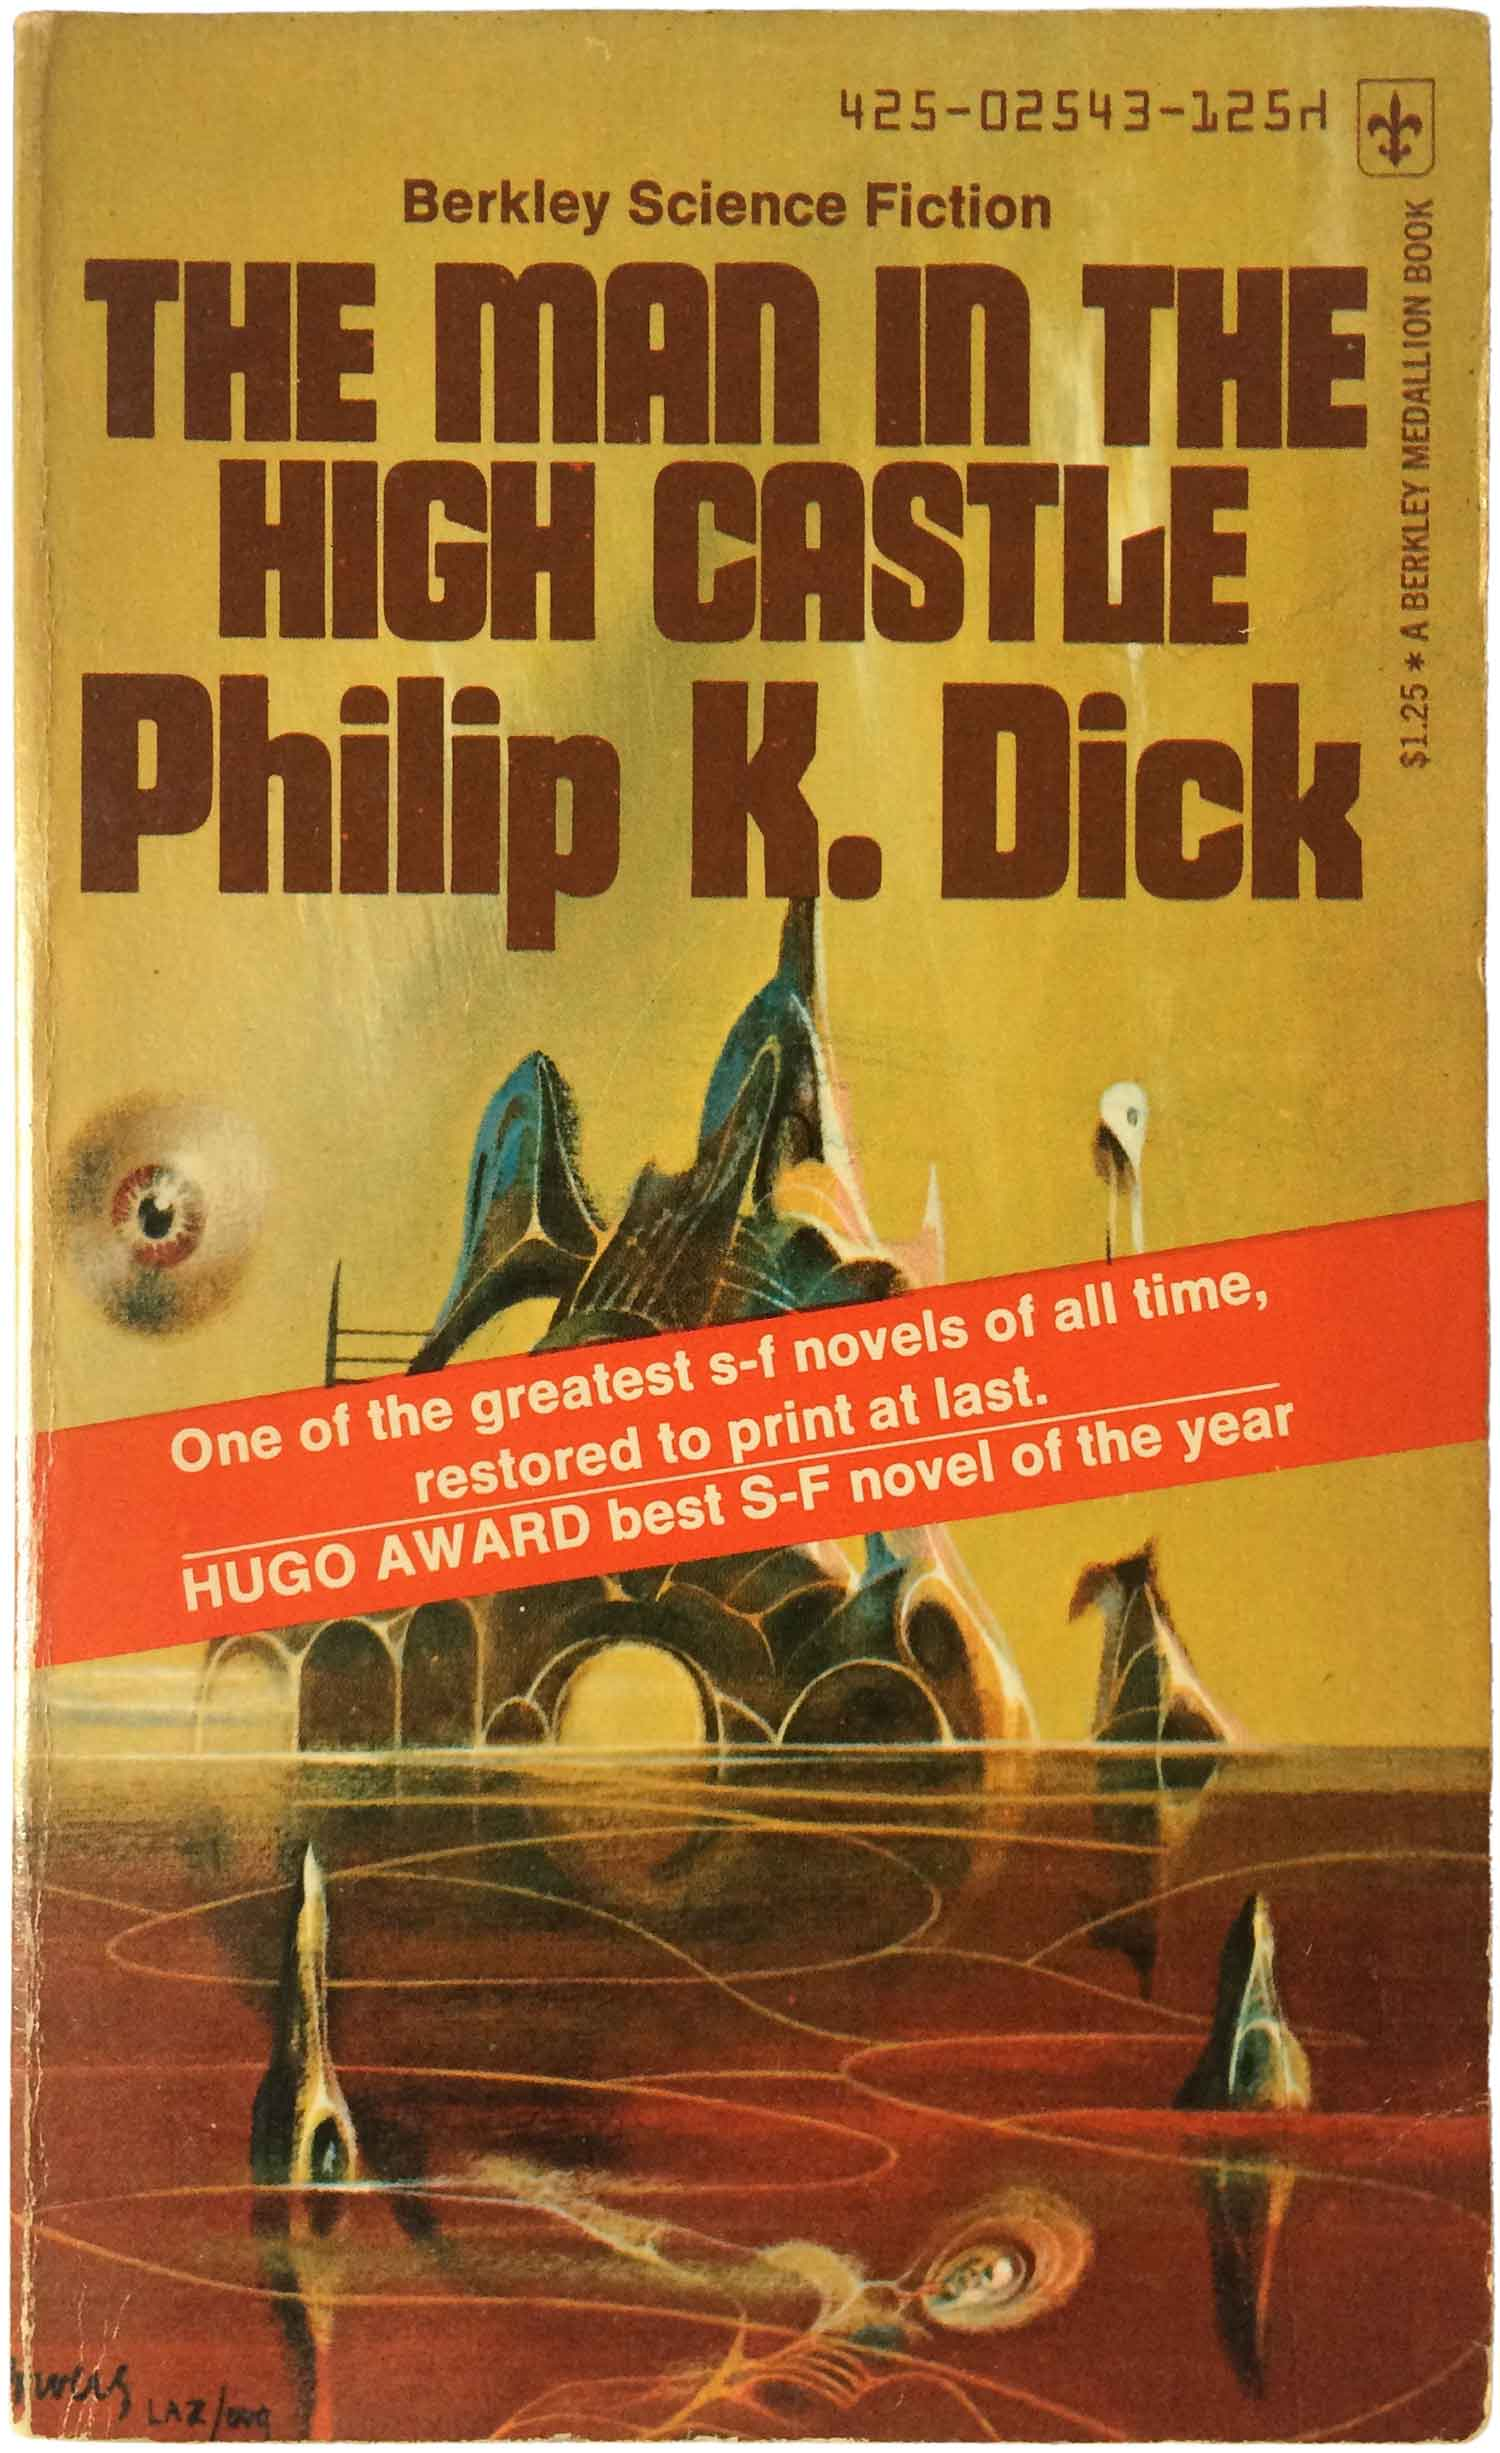 pkd_manhighcastle_berkley